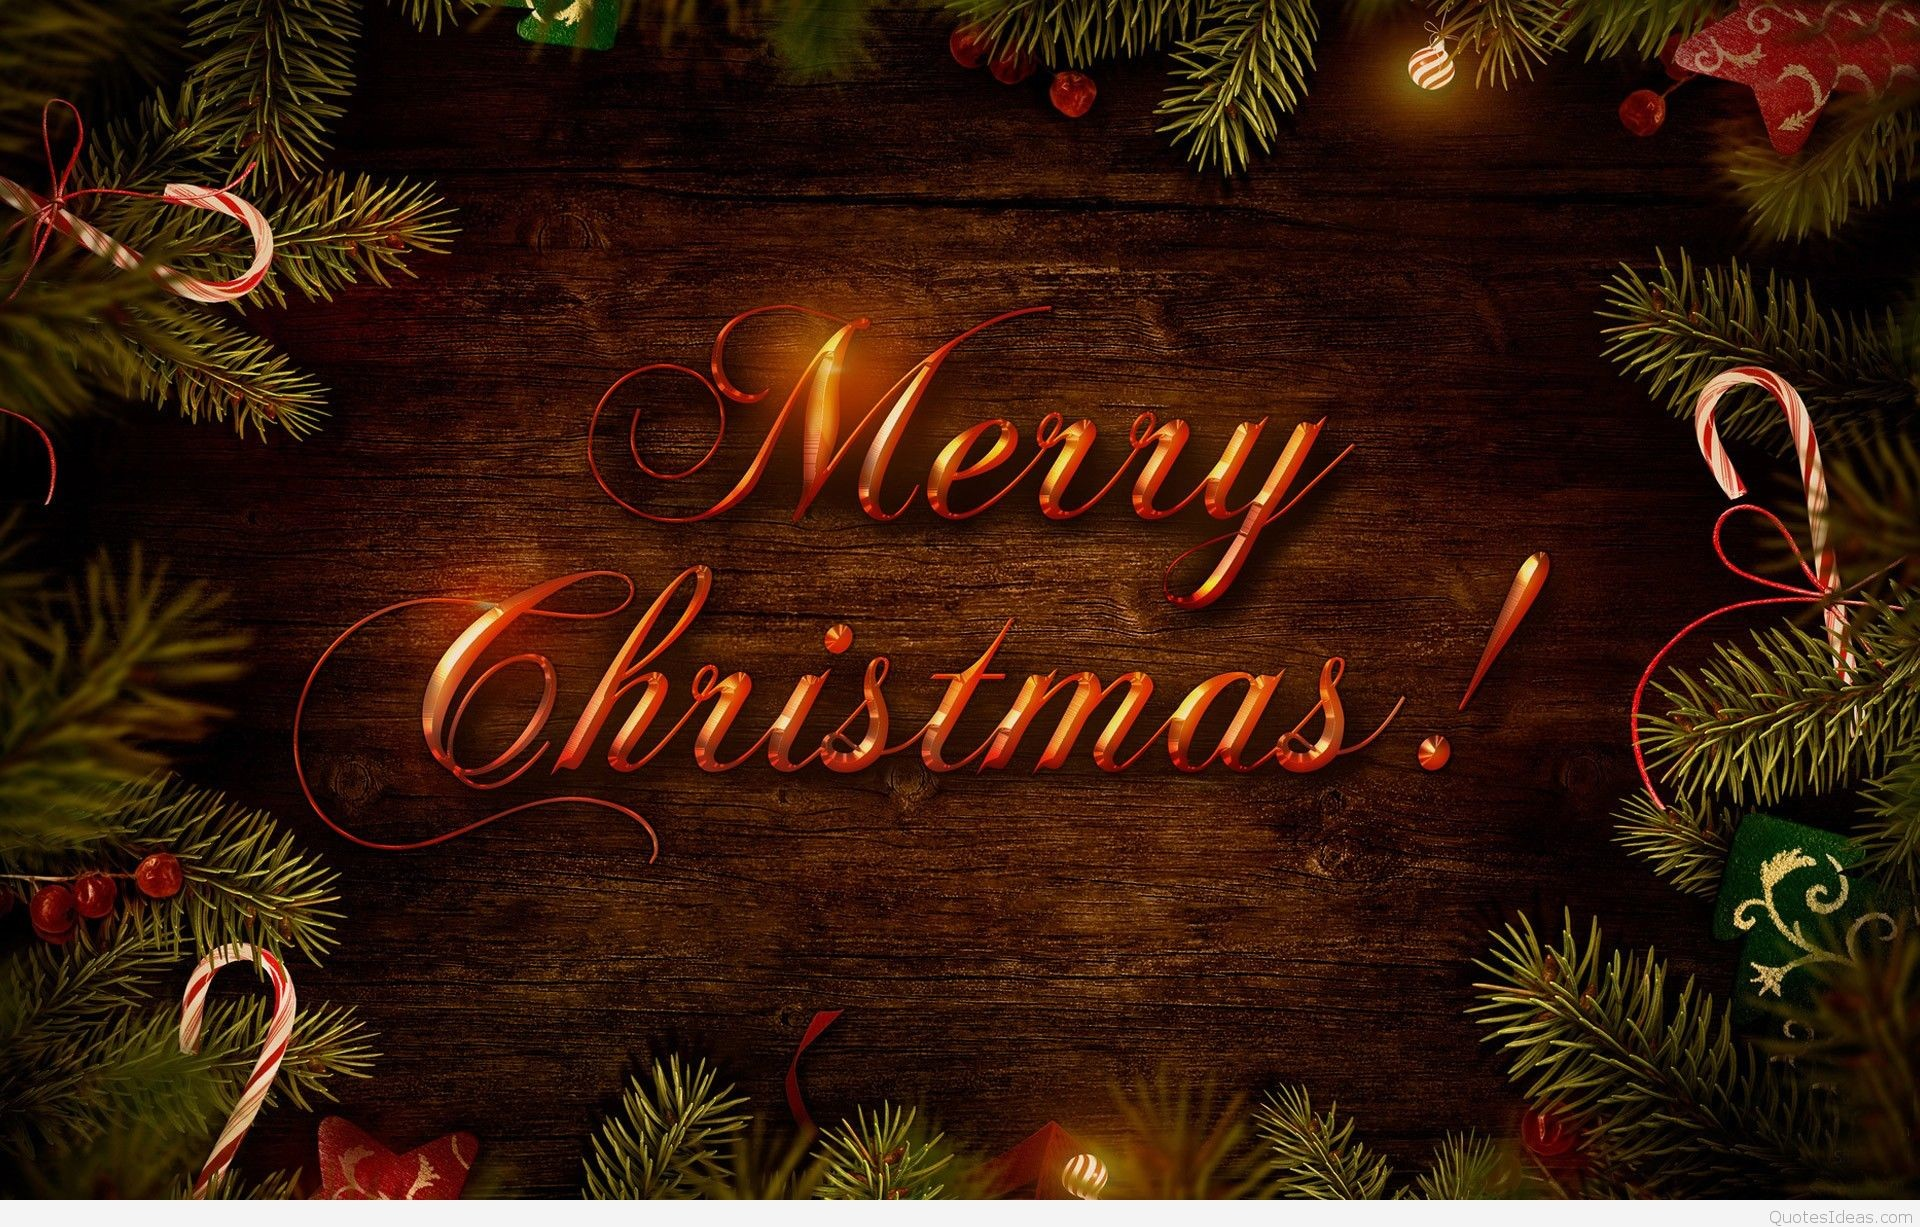 Cute Merry Christmas Wallpaper 64 Images